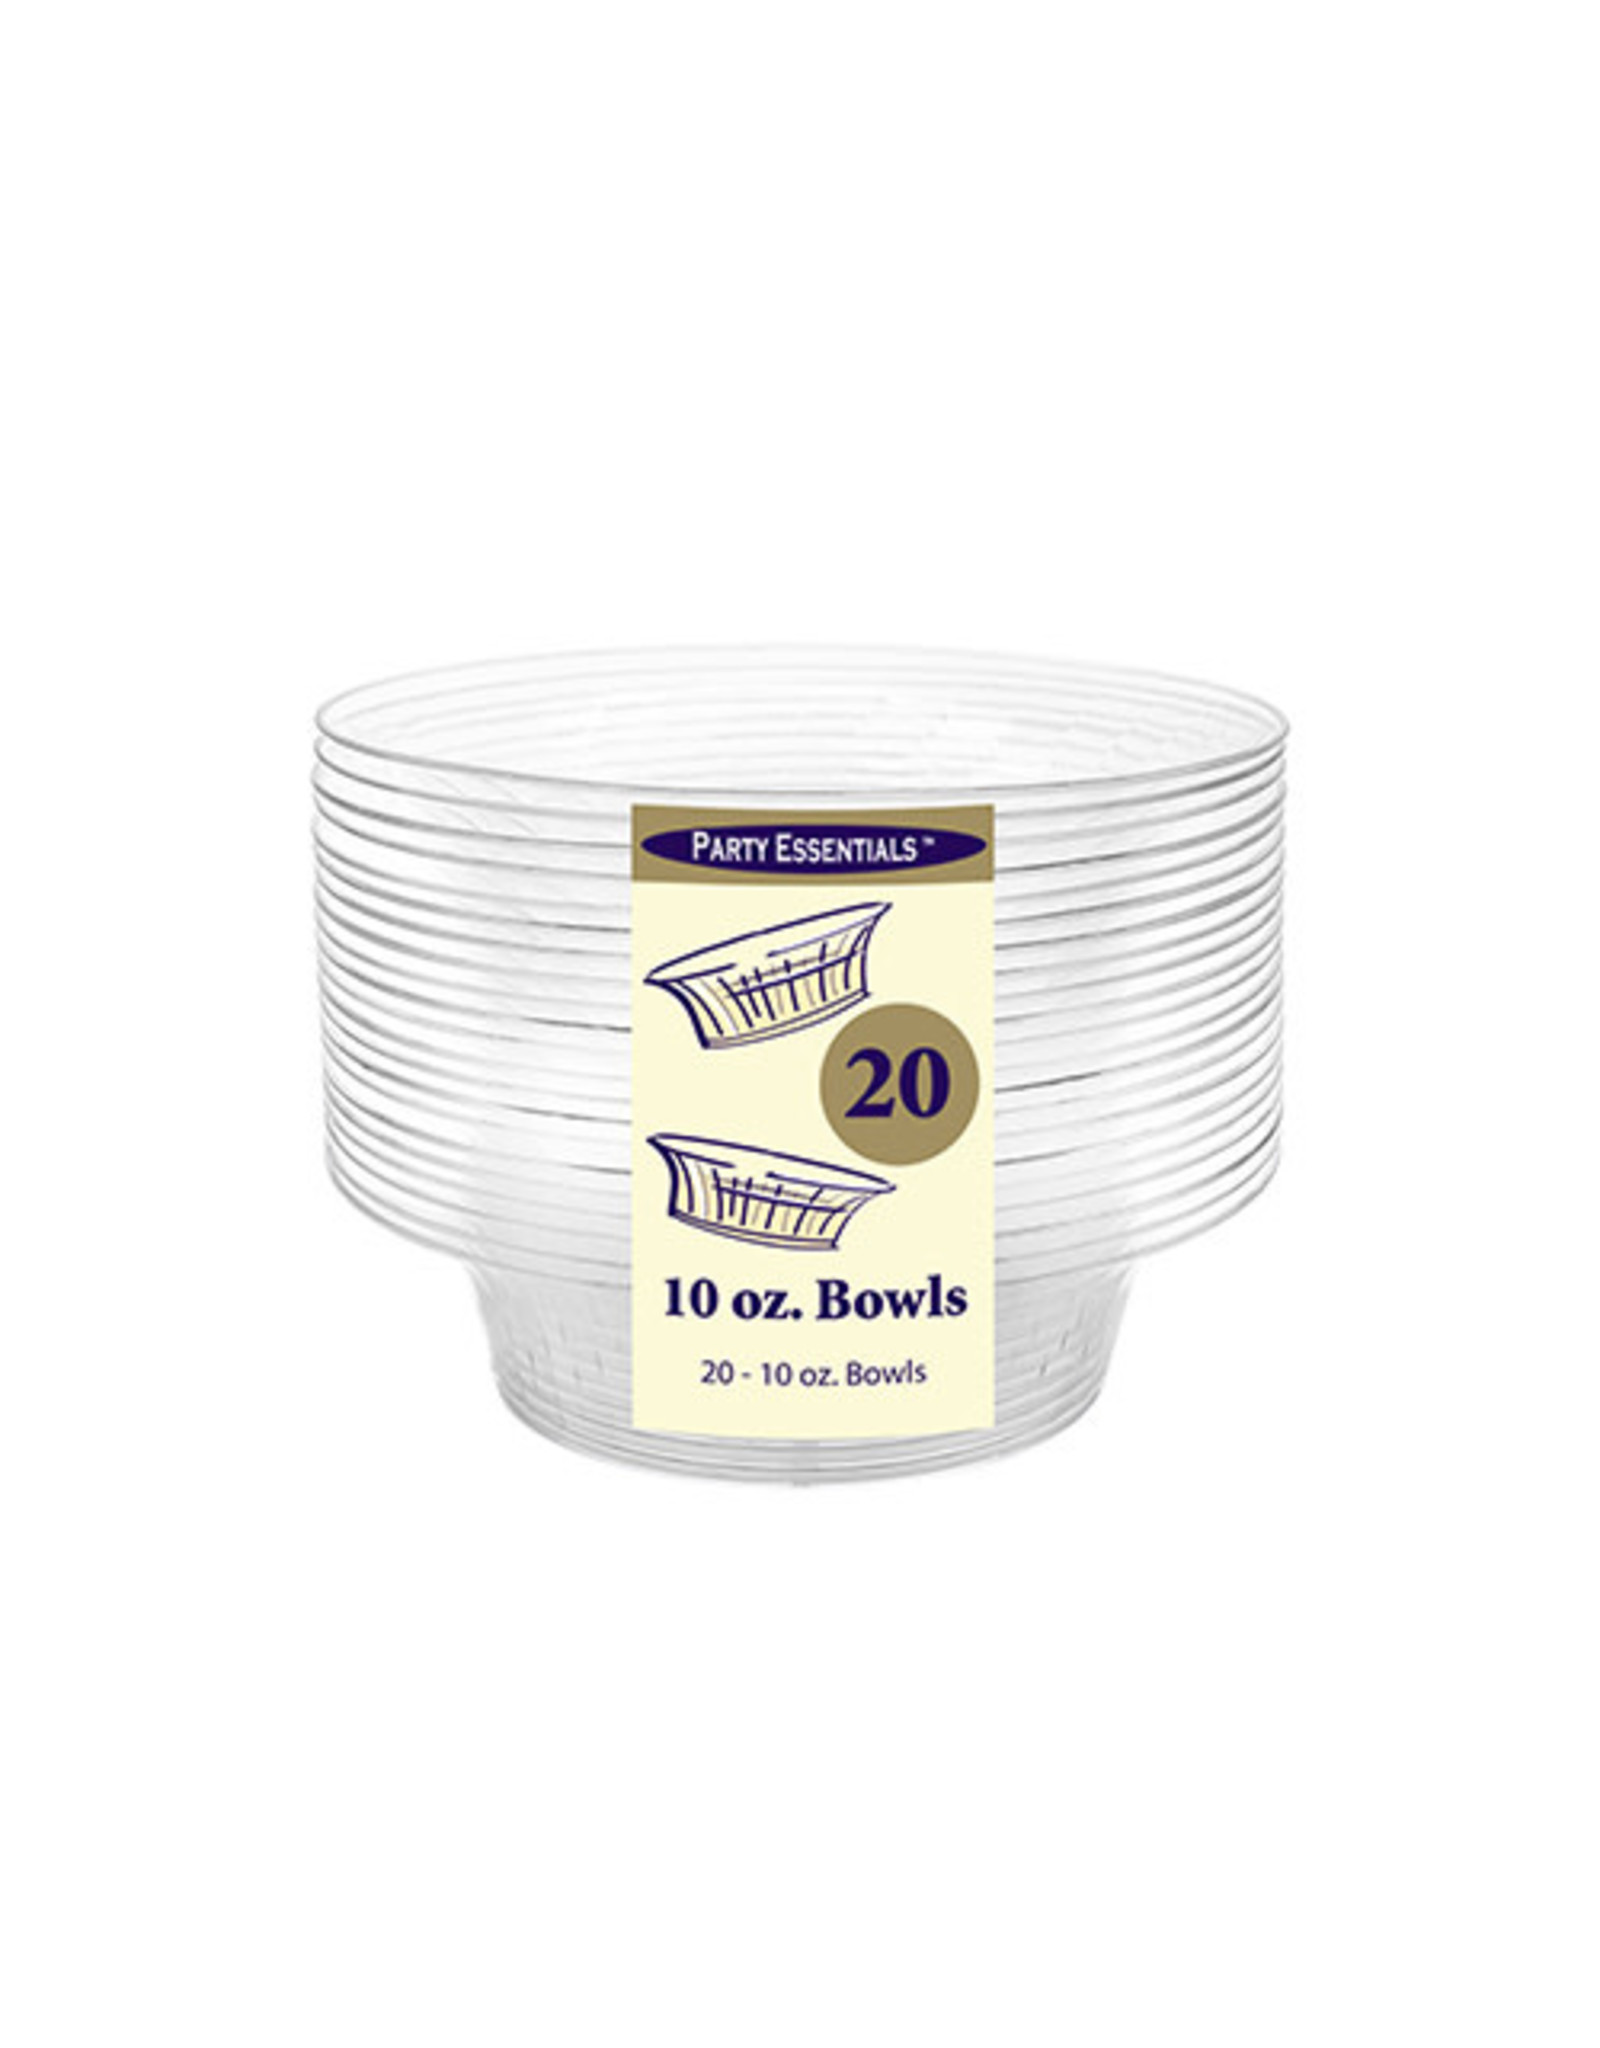 northwest 10oz. Clear Deluxe Bowls - 20ct.